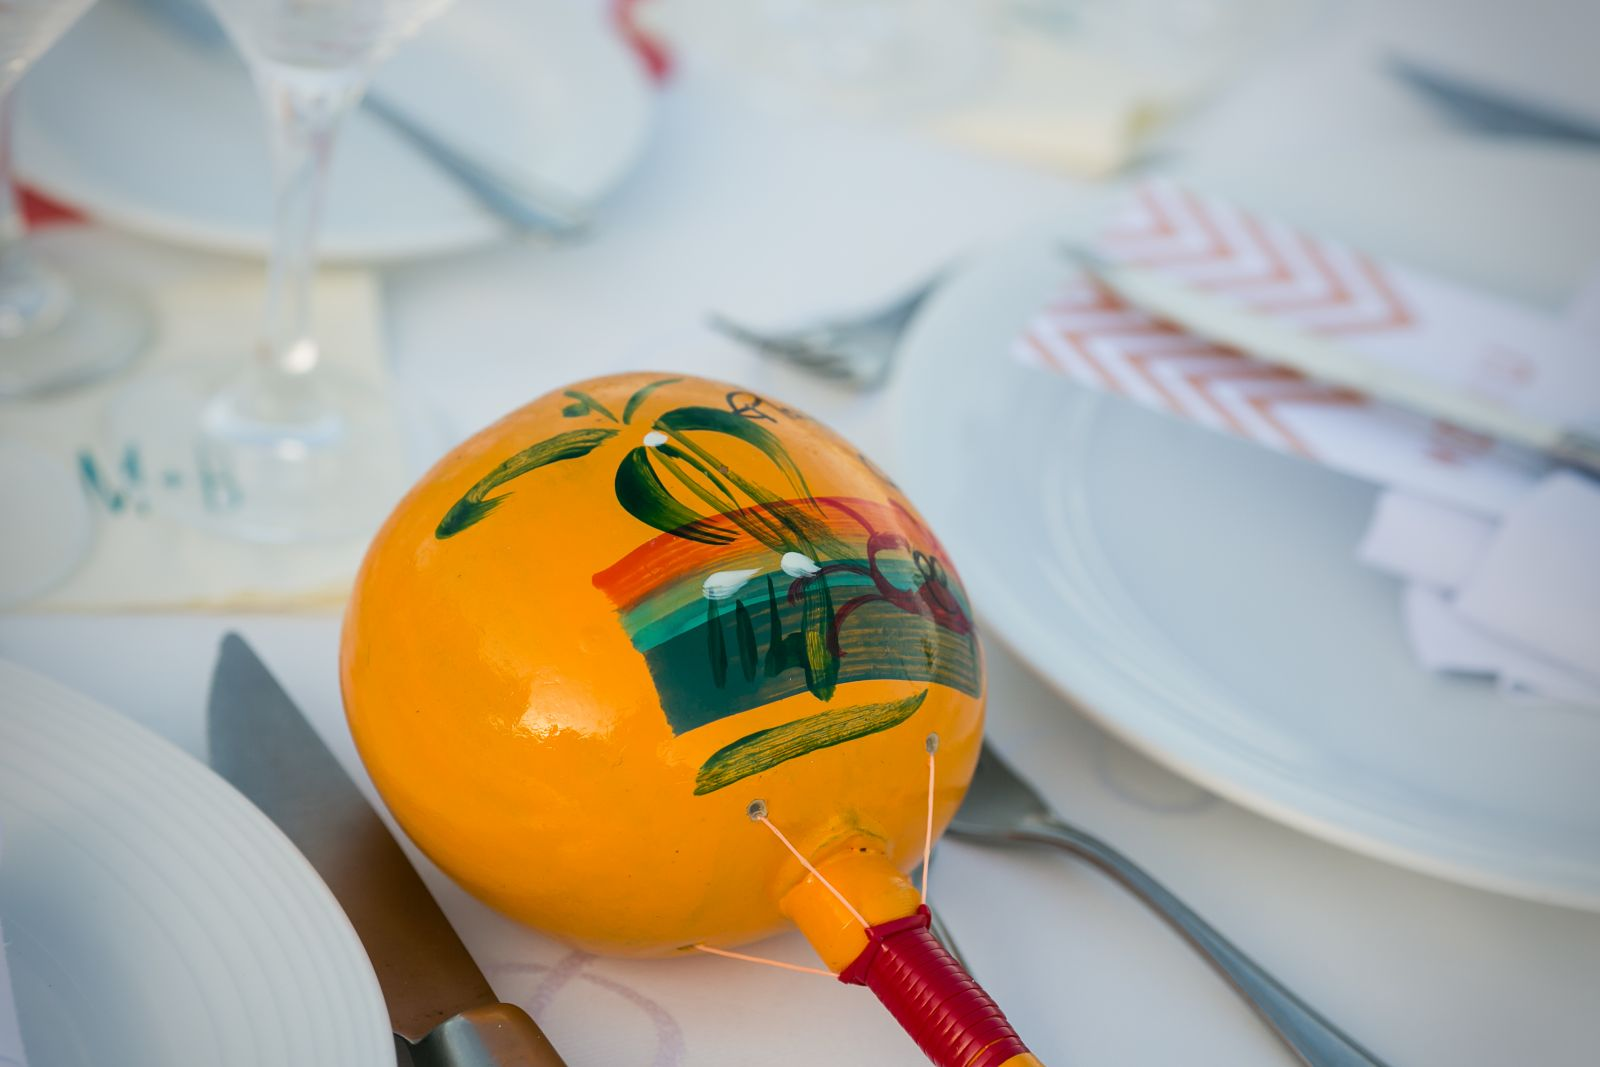 We bought the wooden maracas on 5th Ave. in Playa, and used them as our wedding favors - we put one out at each place setting.